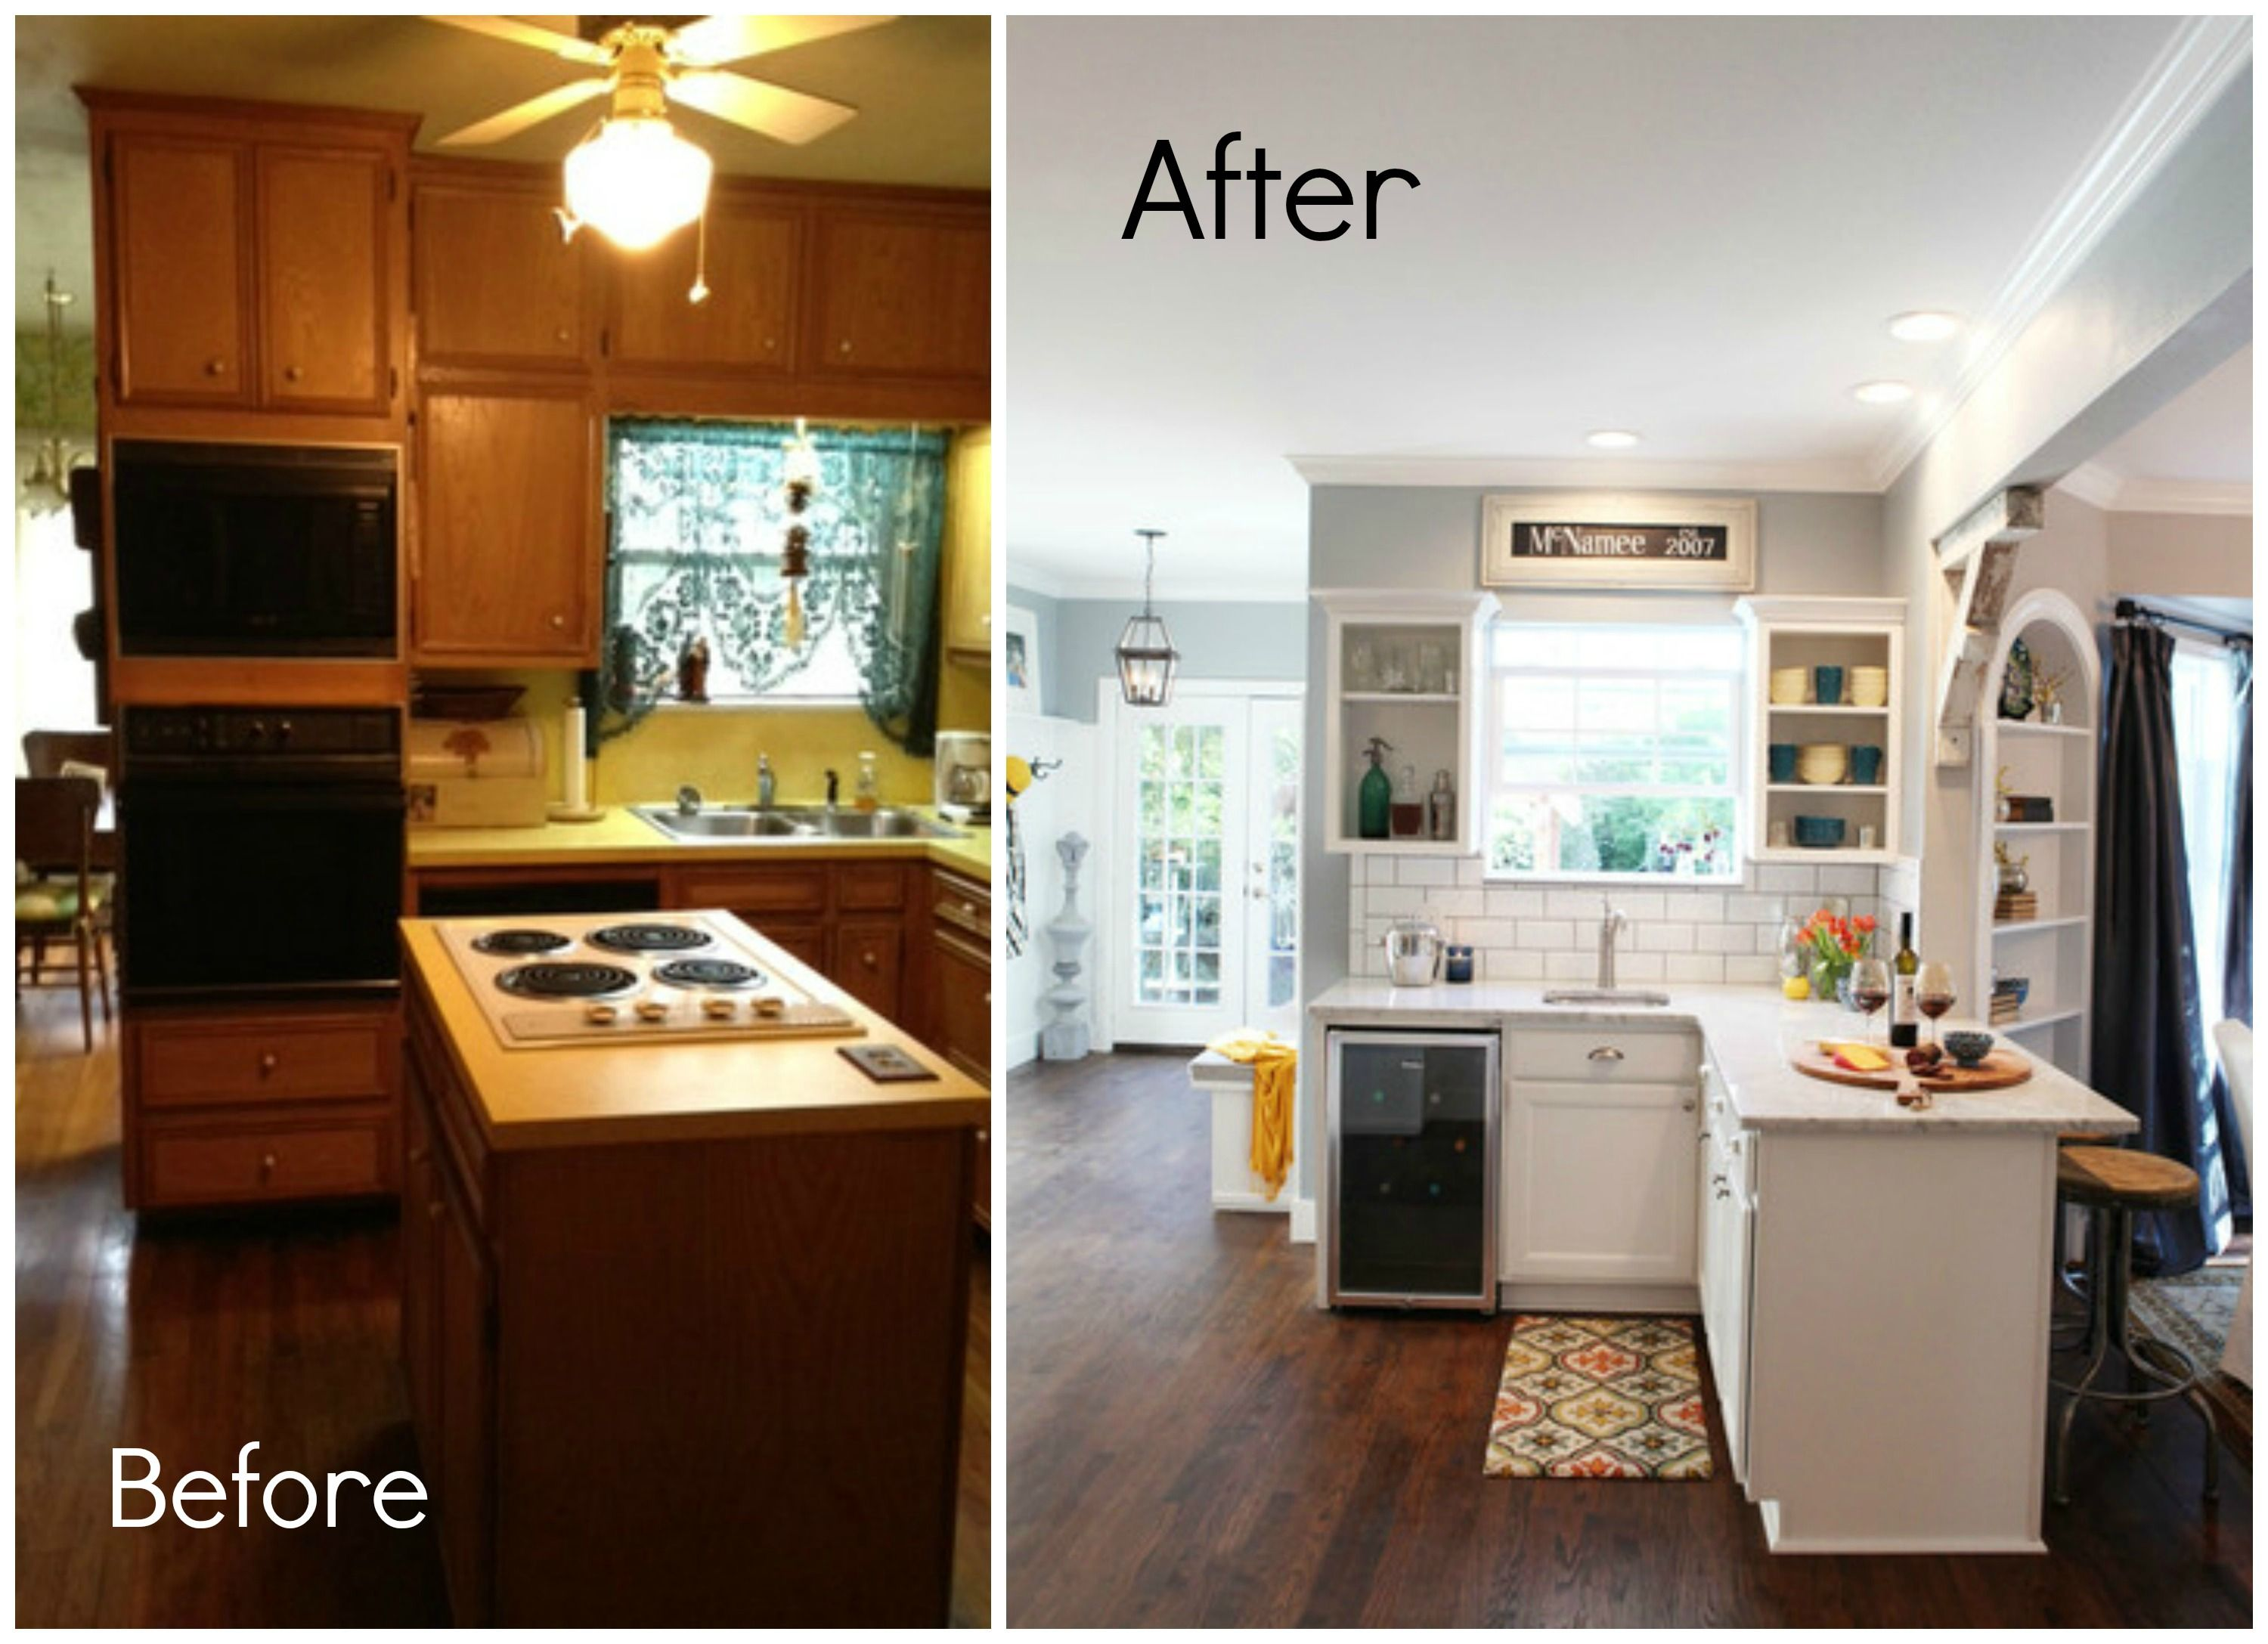 Sensational Hgtvs Fixer Upper Before And After Home Pinterest Bar Largest Home Design Picture Inspirations Pitcheantrous